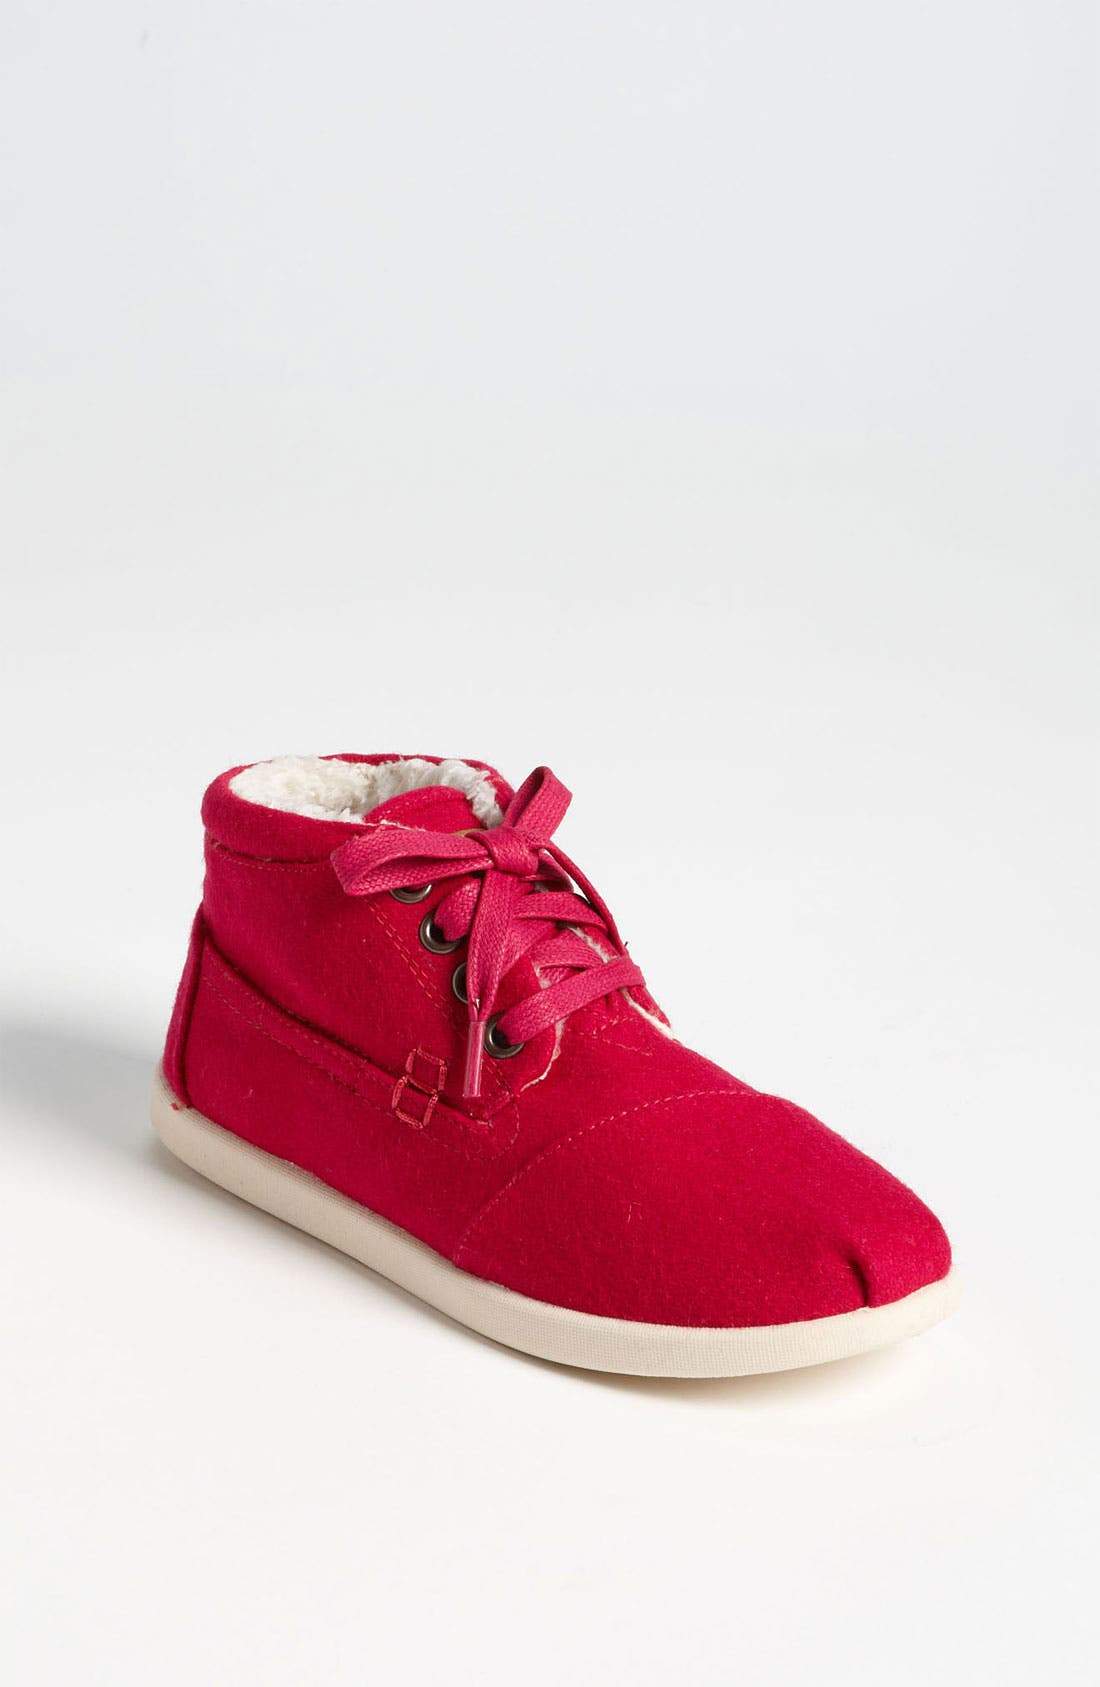 Alternate Image 1 Selected - TOMS 'Botas - Youth' Wool Boot (Toddler, Little Kid & Big Kid)